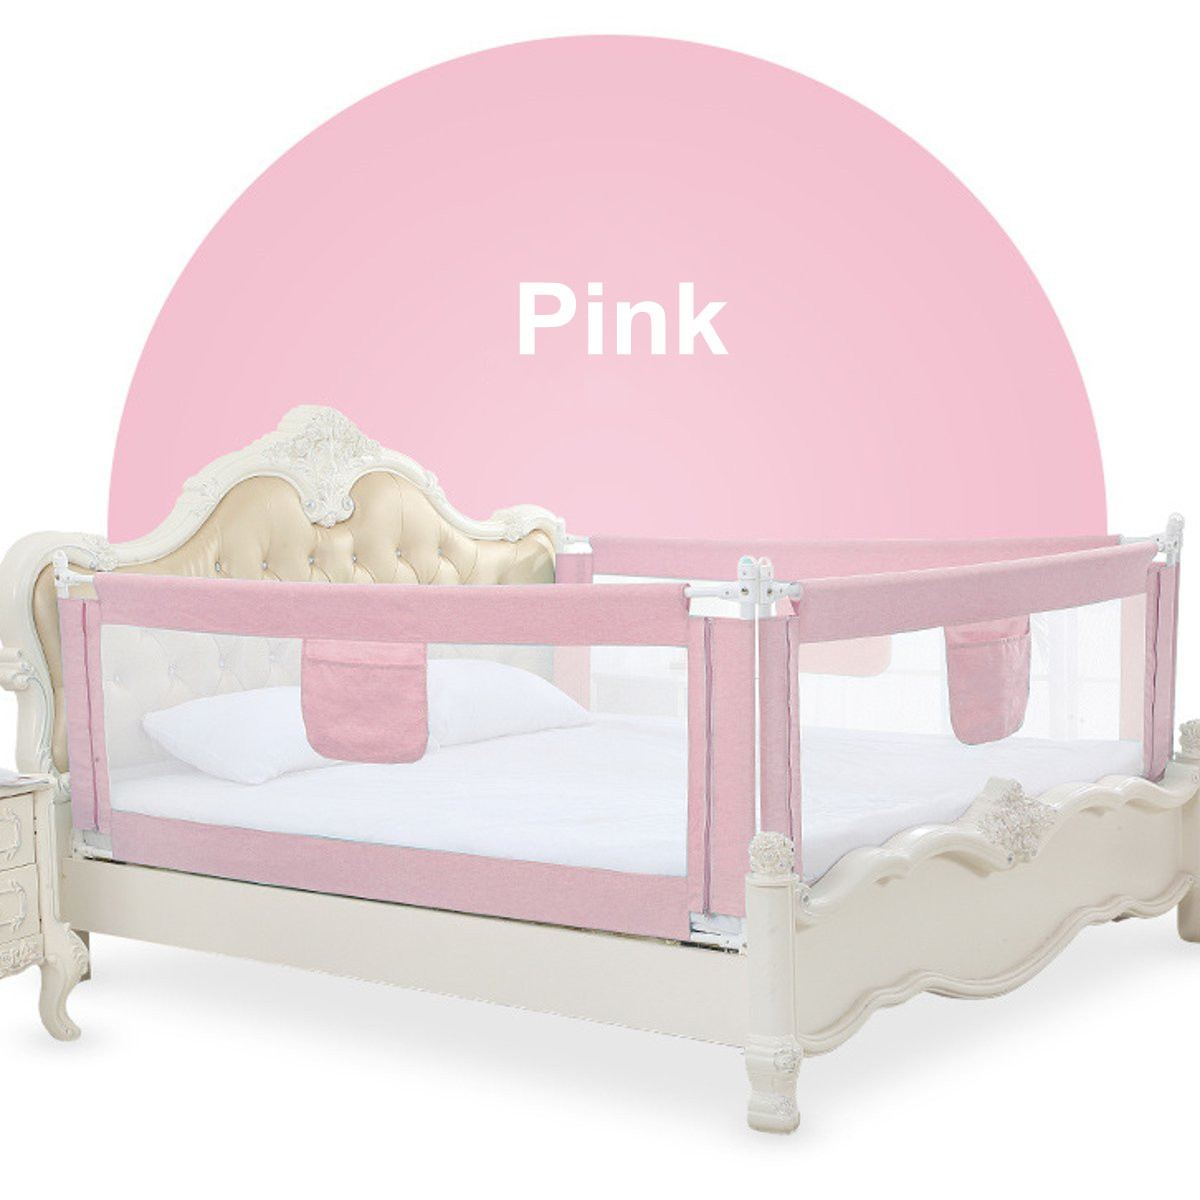 2M Baby Bed Fence for Child Safety used as Baby Gate from Falling Accidentally while Sleeping or Playing 16